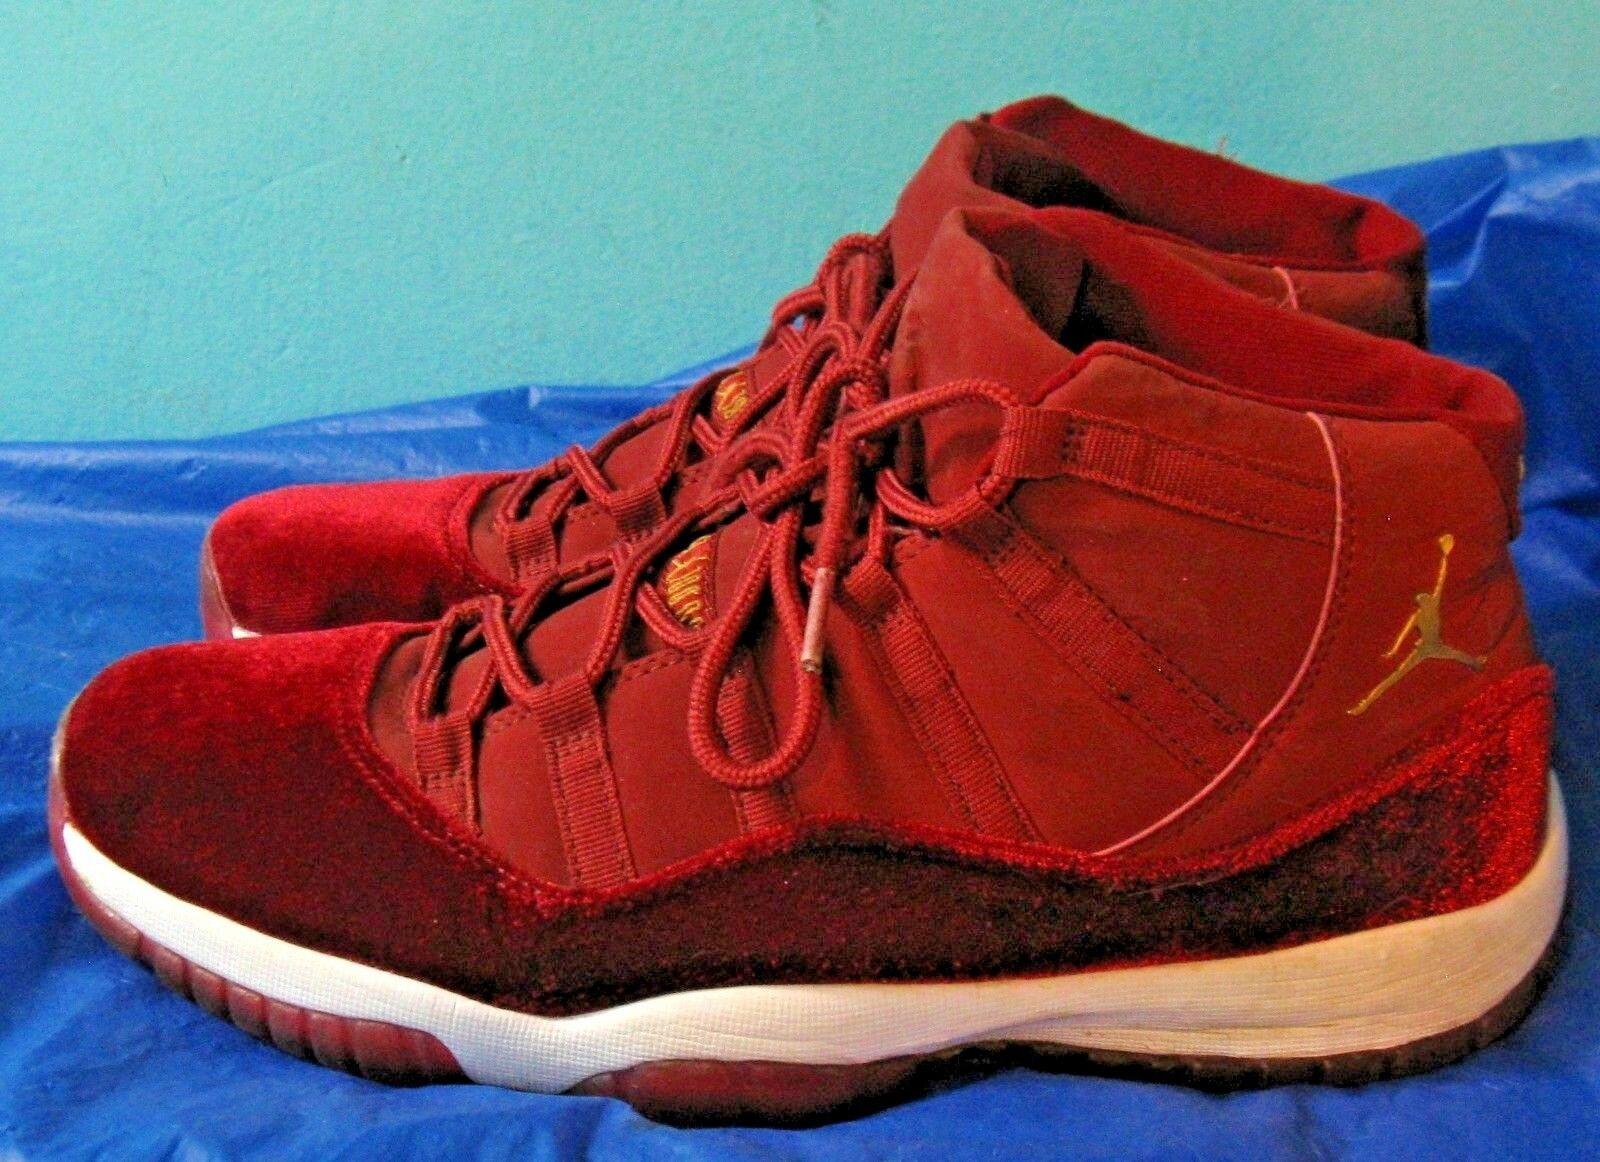 Nike Air Jordan 11 Heiress Retro XI Night Maroon 852625-650 (Sz 12)